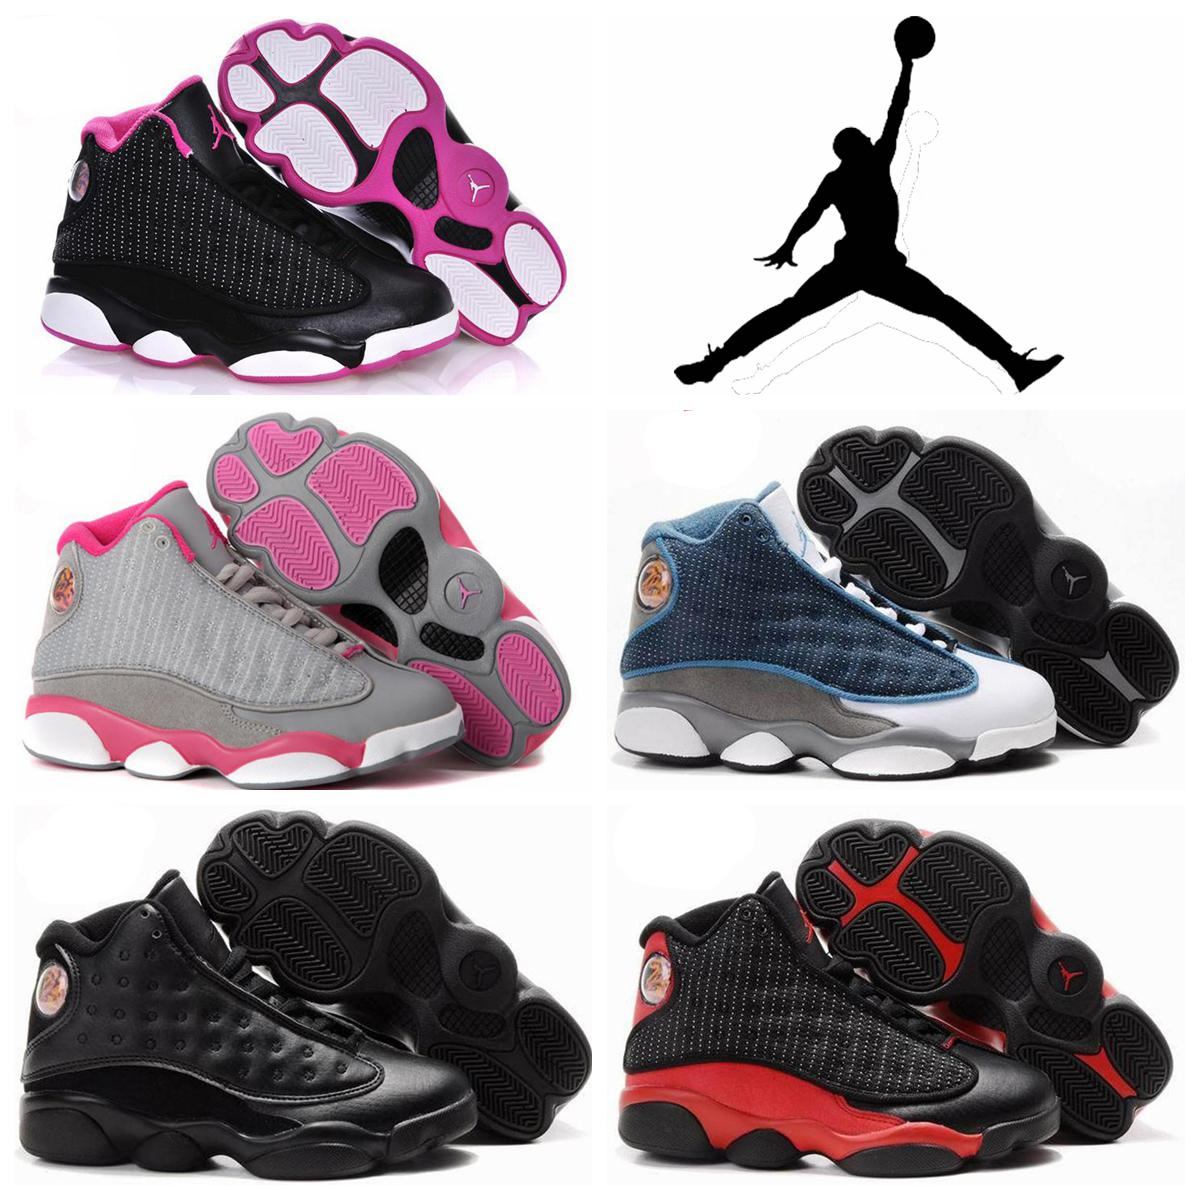 for whole family uk cheap sale more photos 2016 New Nike Air Jordan 13 Xiii Retro Childrens Shoes Boys Girls ...